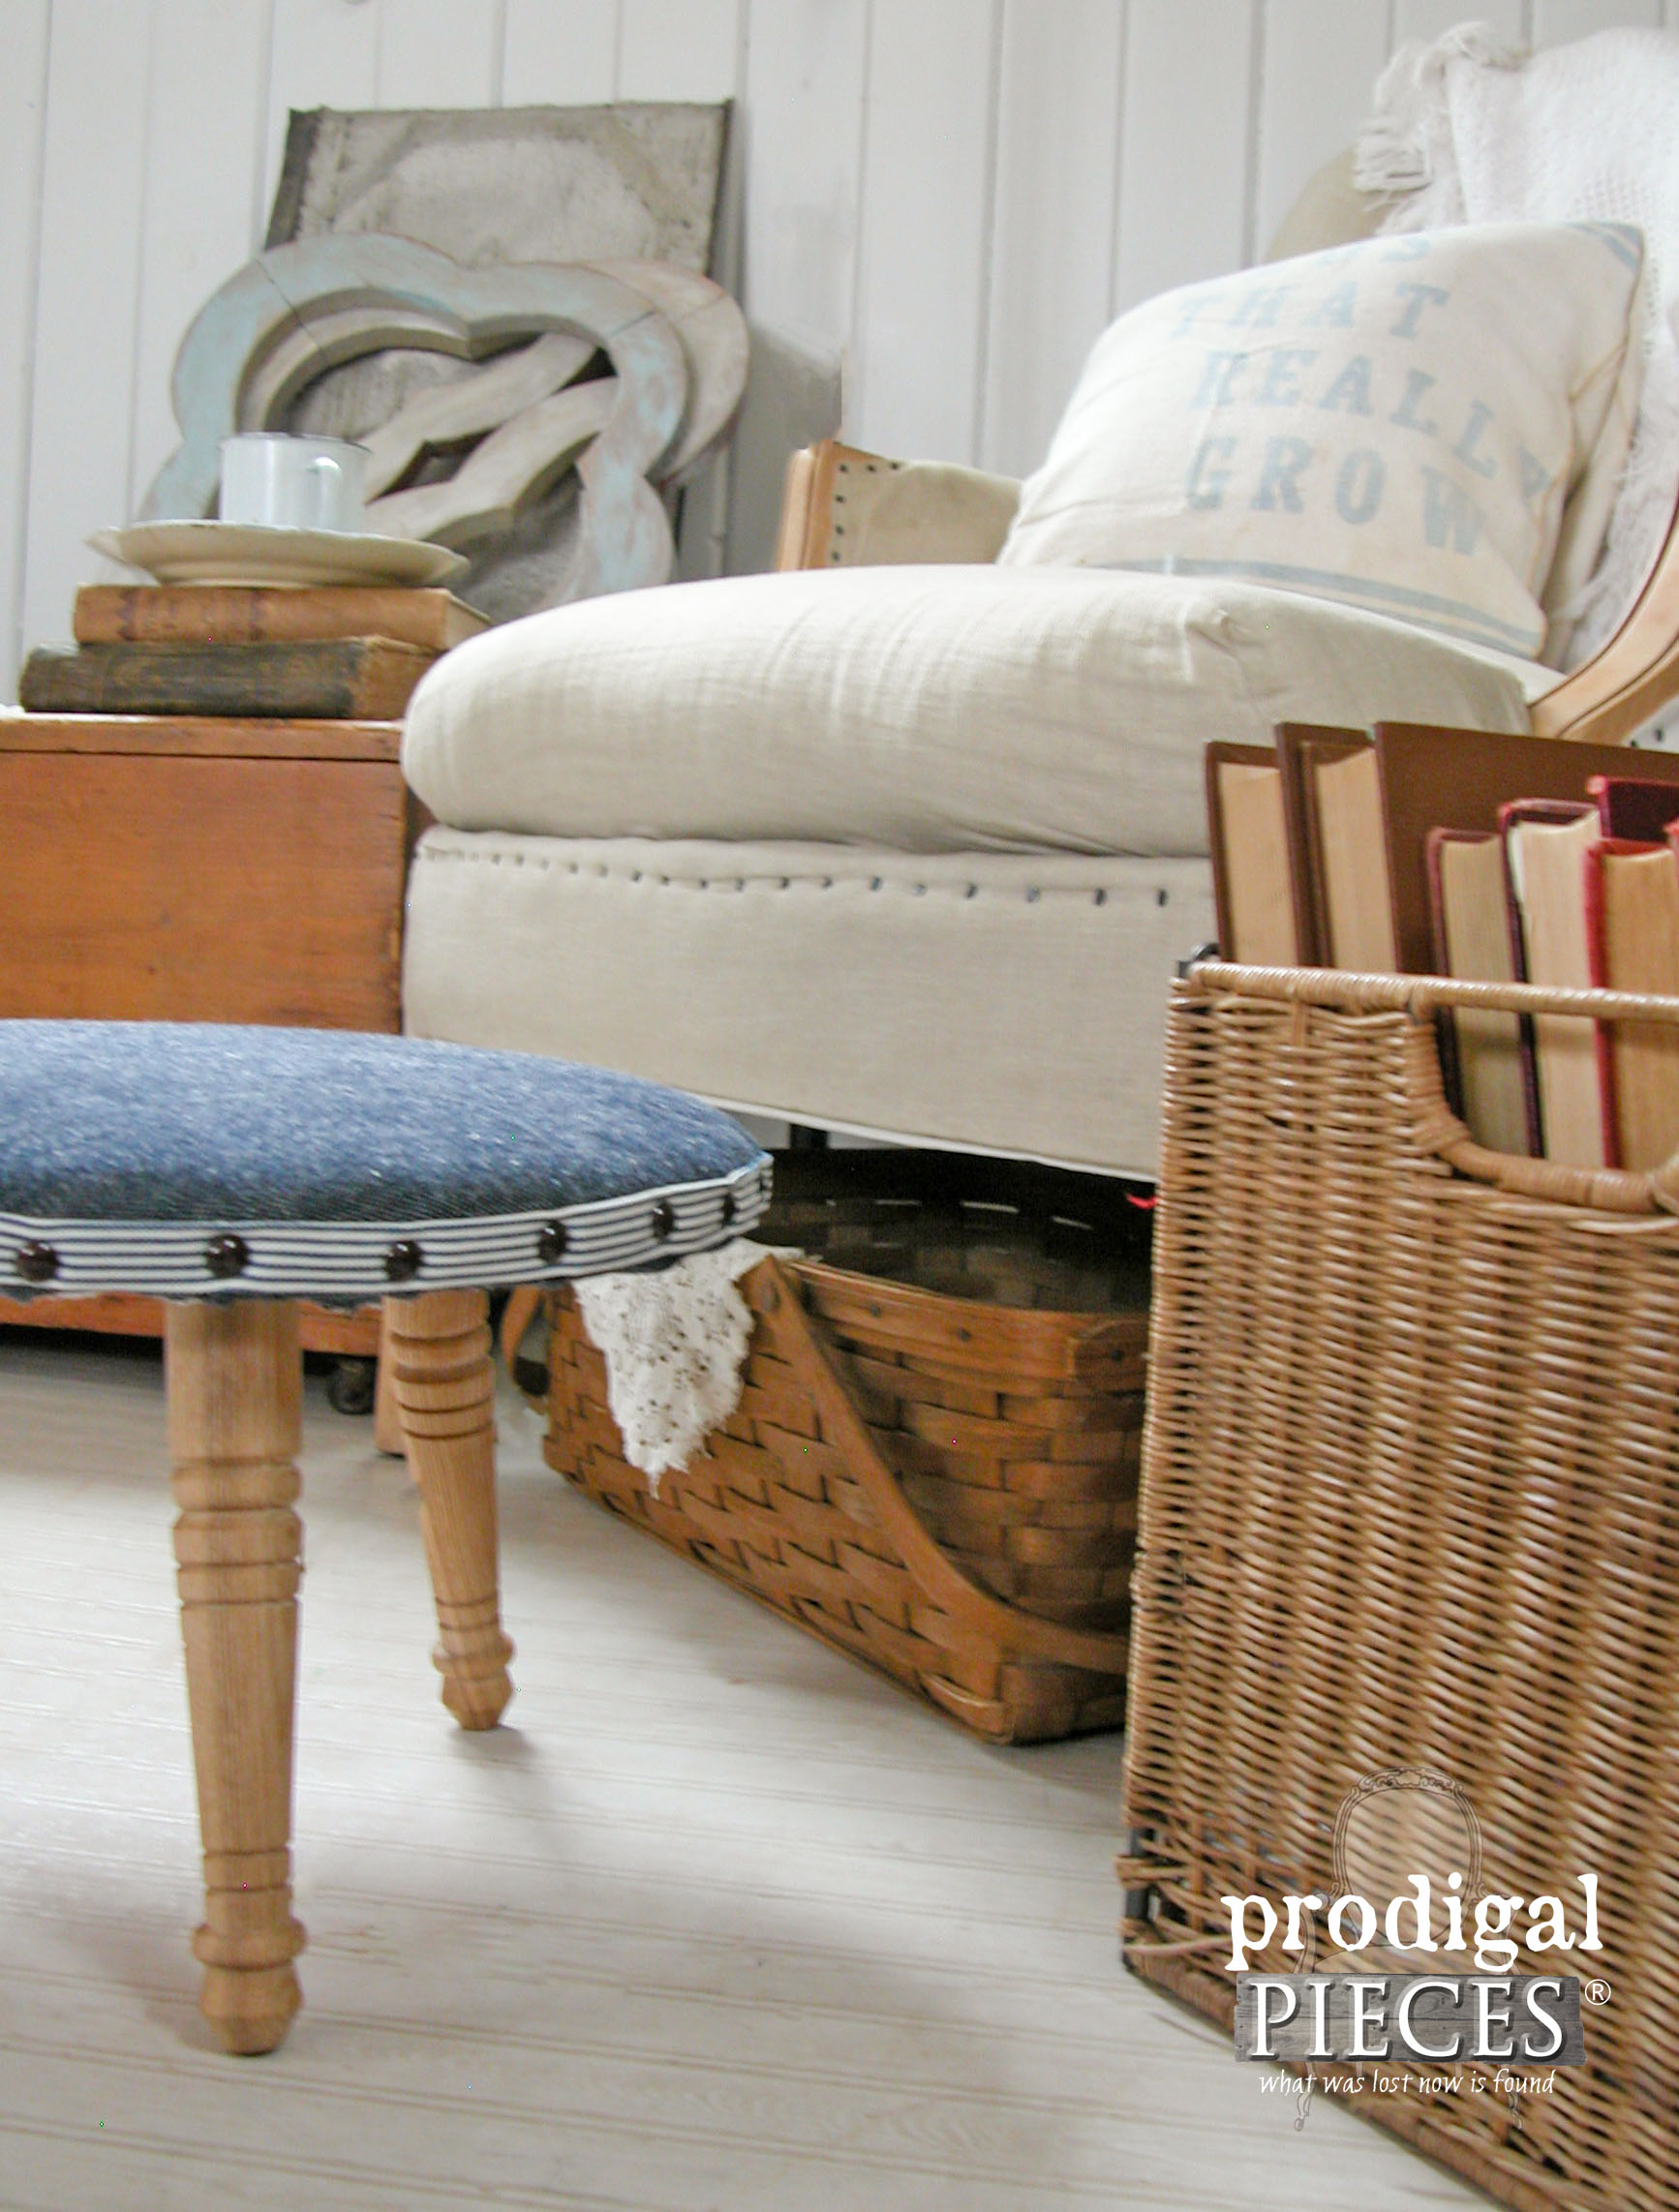 Thrifted Baskets, Books, and Footstool Home Decor by Prodigal Pieces | www.prodigalpieces.com